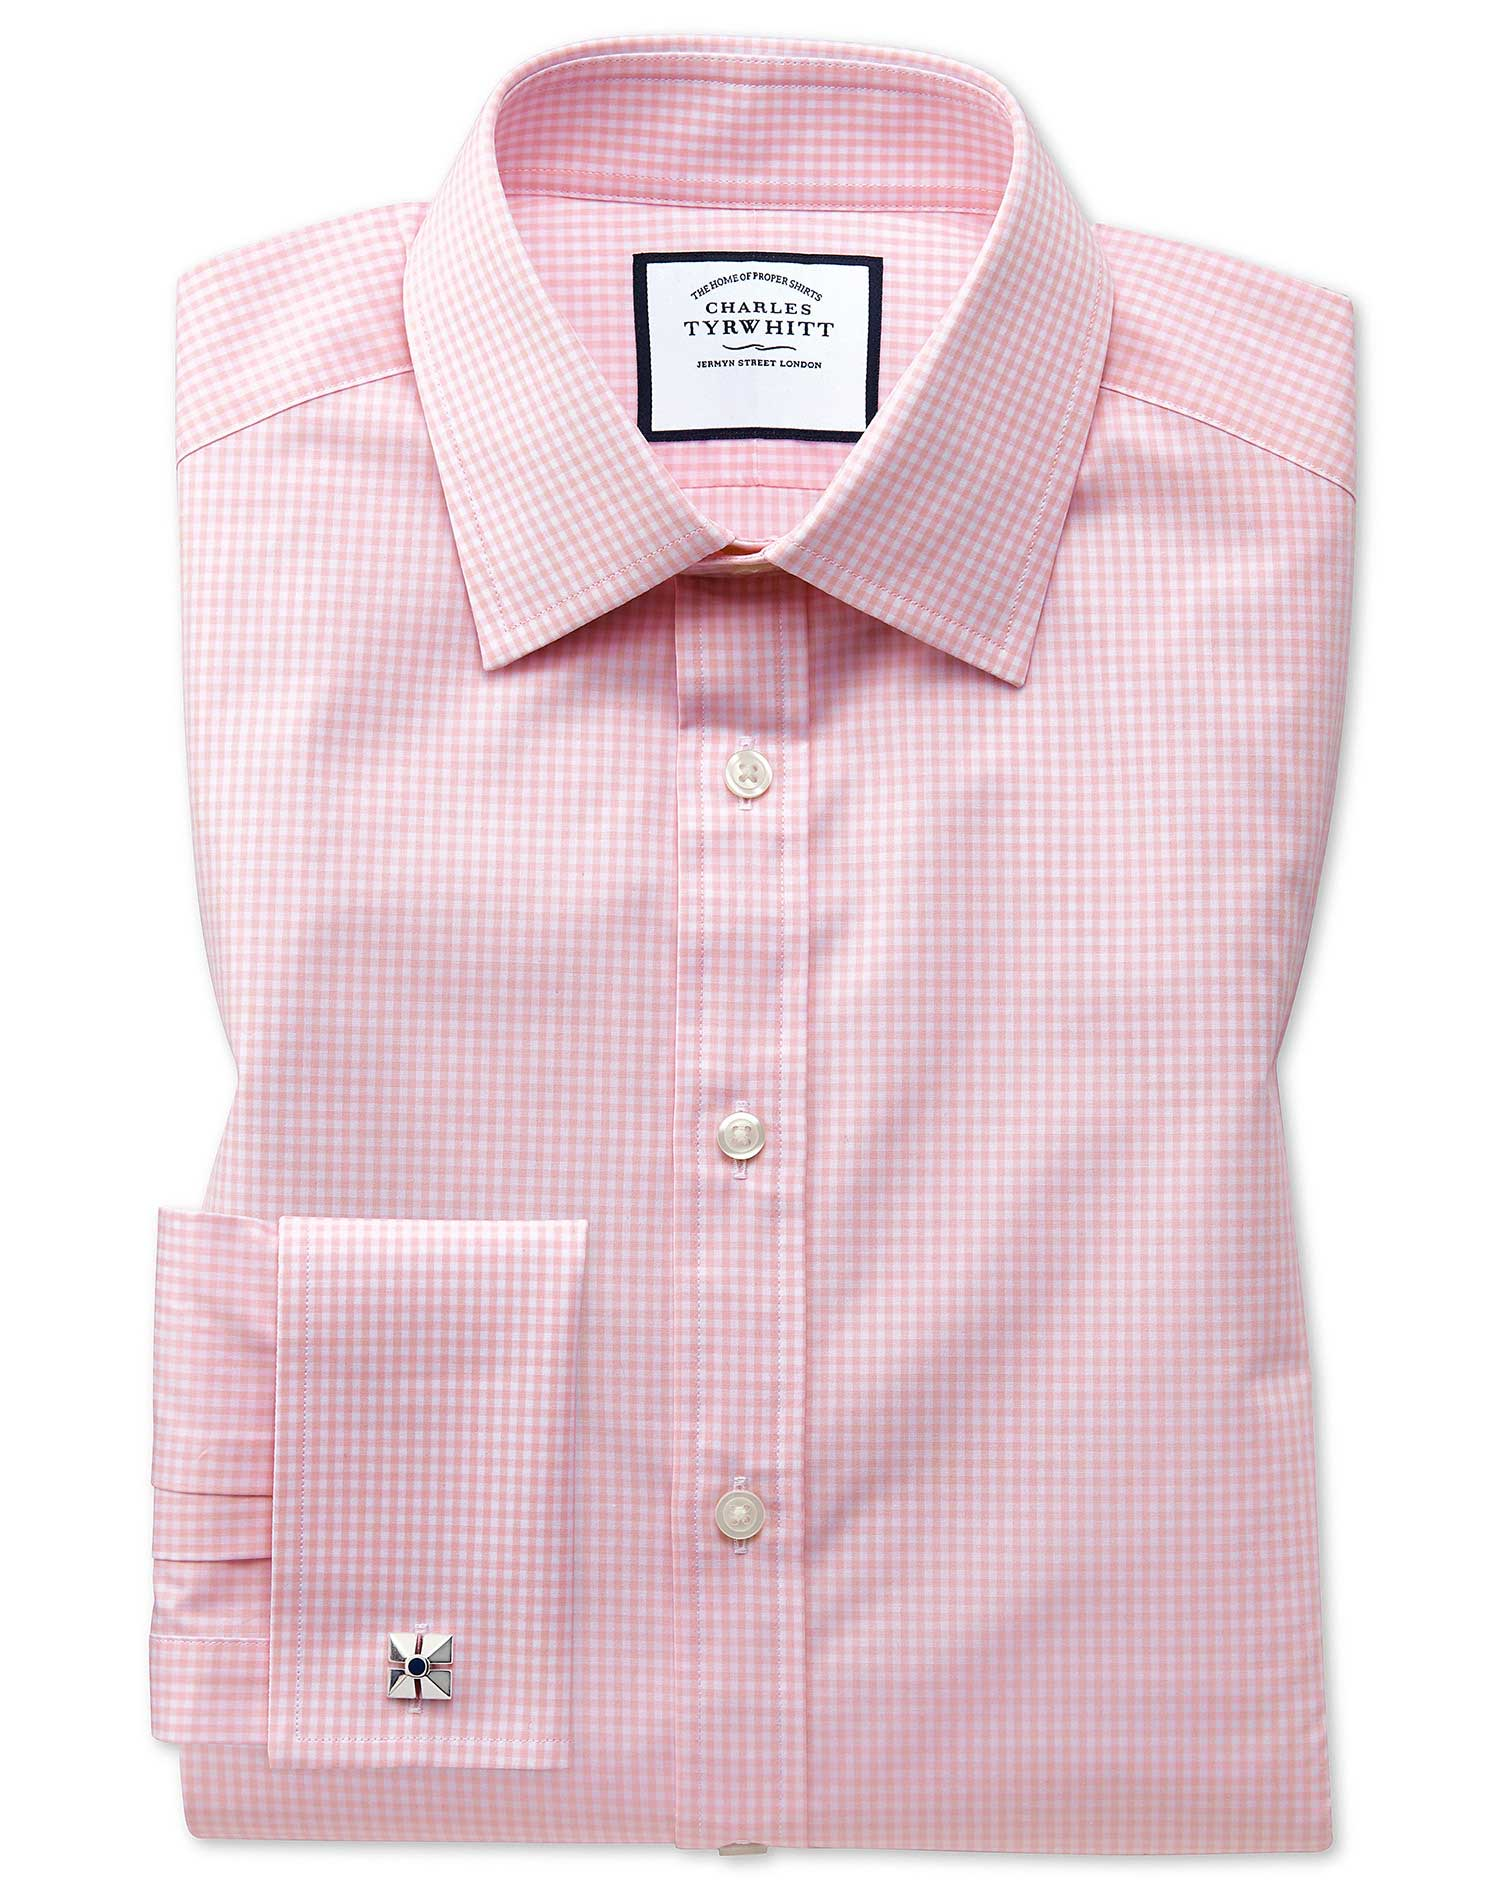 Extra Slim Fit Small Gingham Light Pink Cotton Formal Shirt Single Cuff Size 14.5/33 by Charles Tyrw